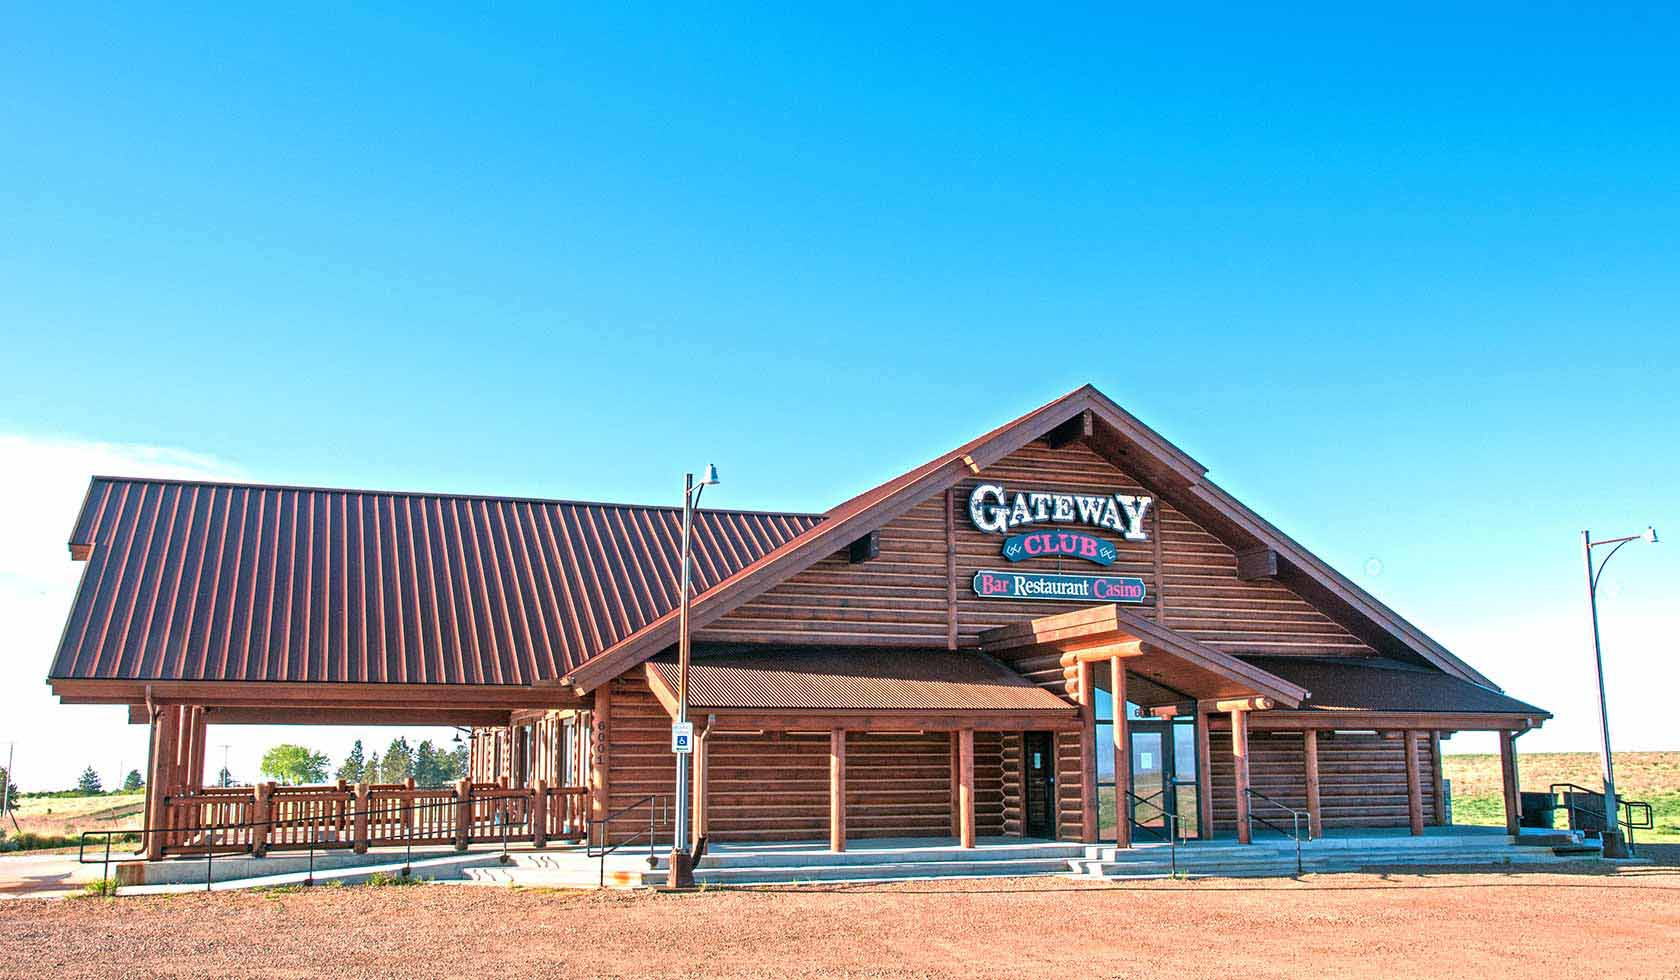 The Gateway Club | Missouri River Country